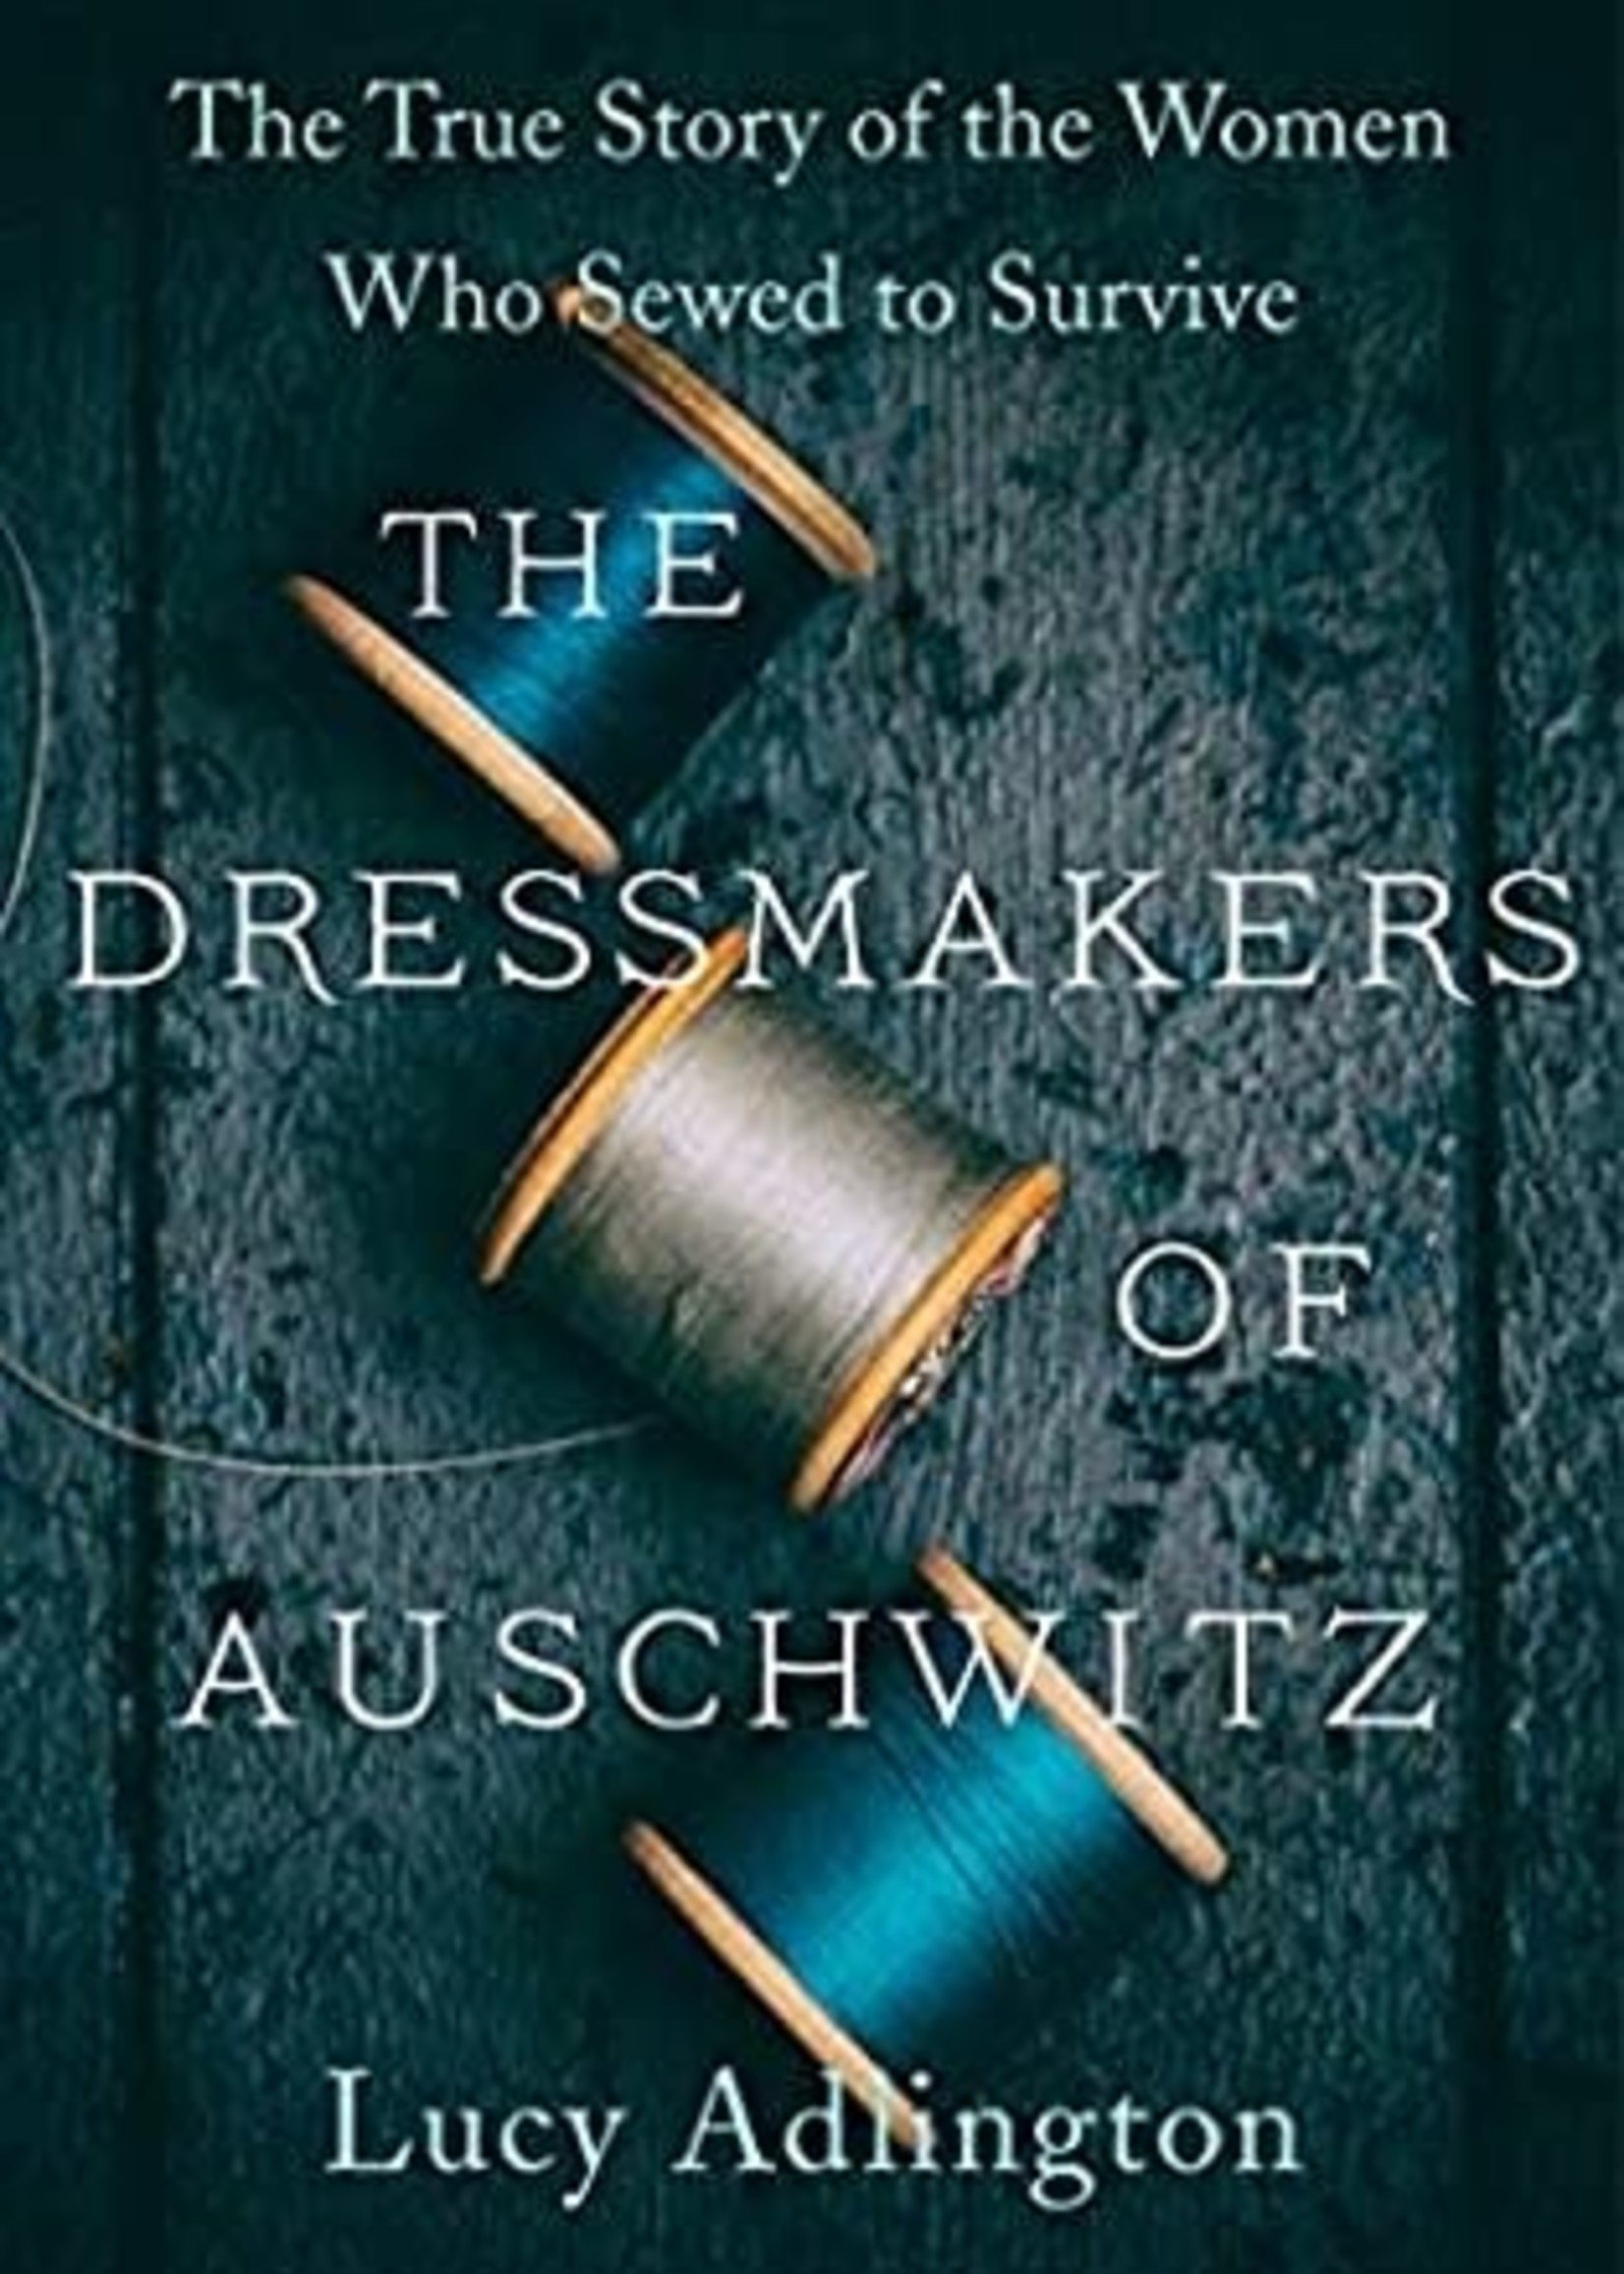 The Dressmakers of Auschwitz: The True Story of the Women Who Sewed to Survive by Lucy Adlington